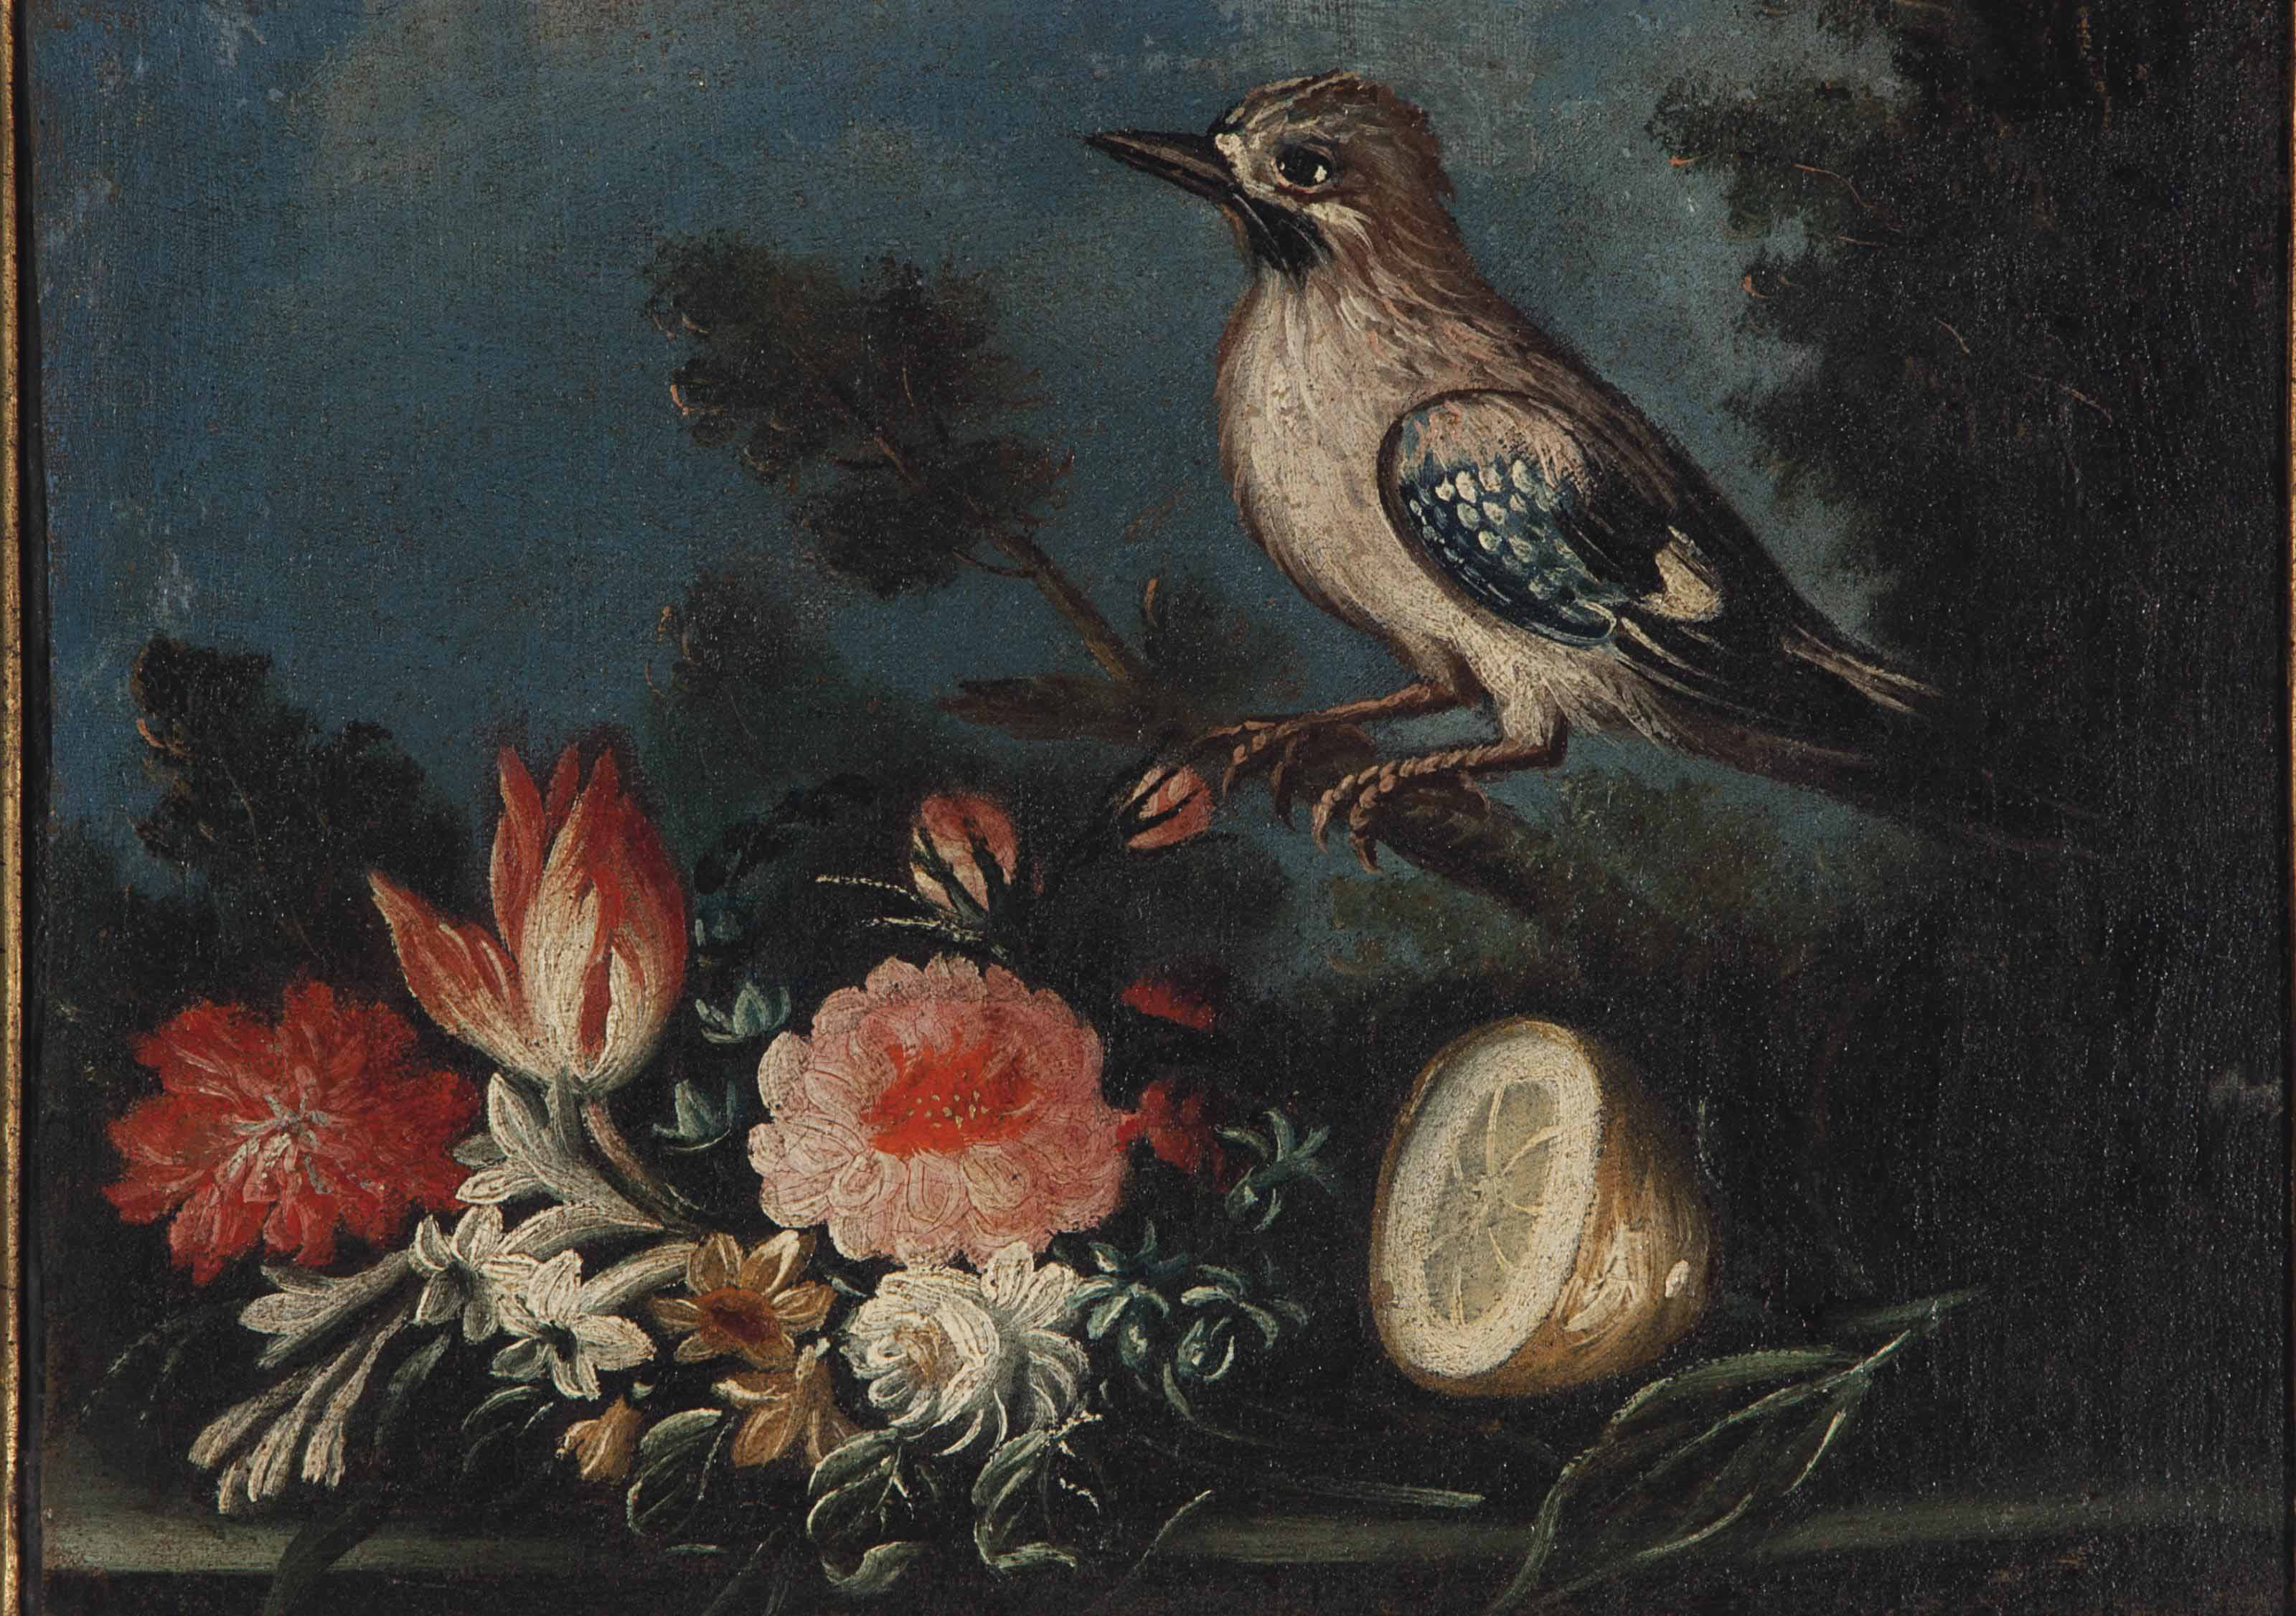 Still life with lemon, bird and bouquet of flowers; and a companion painting